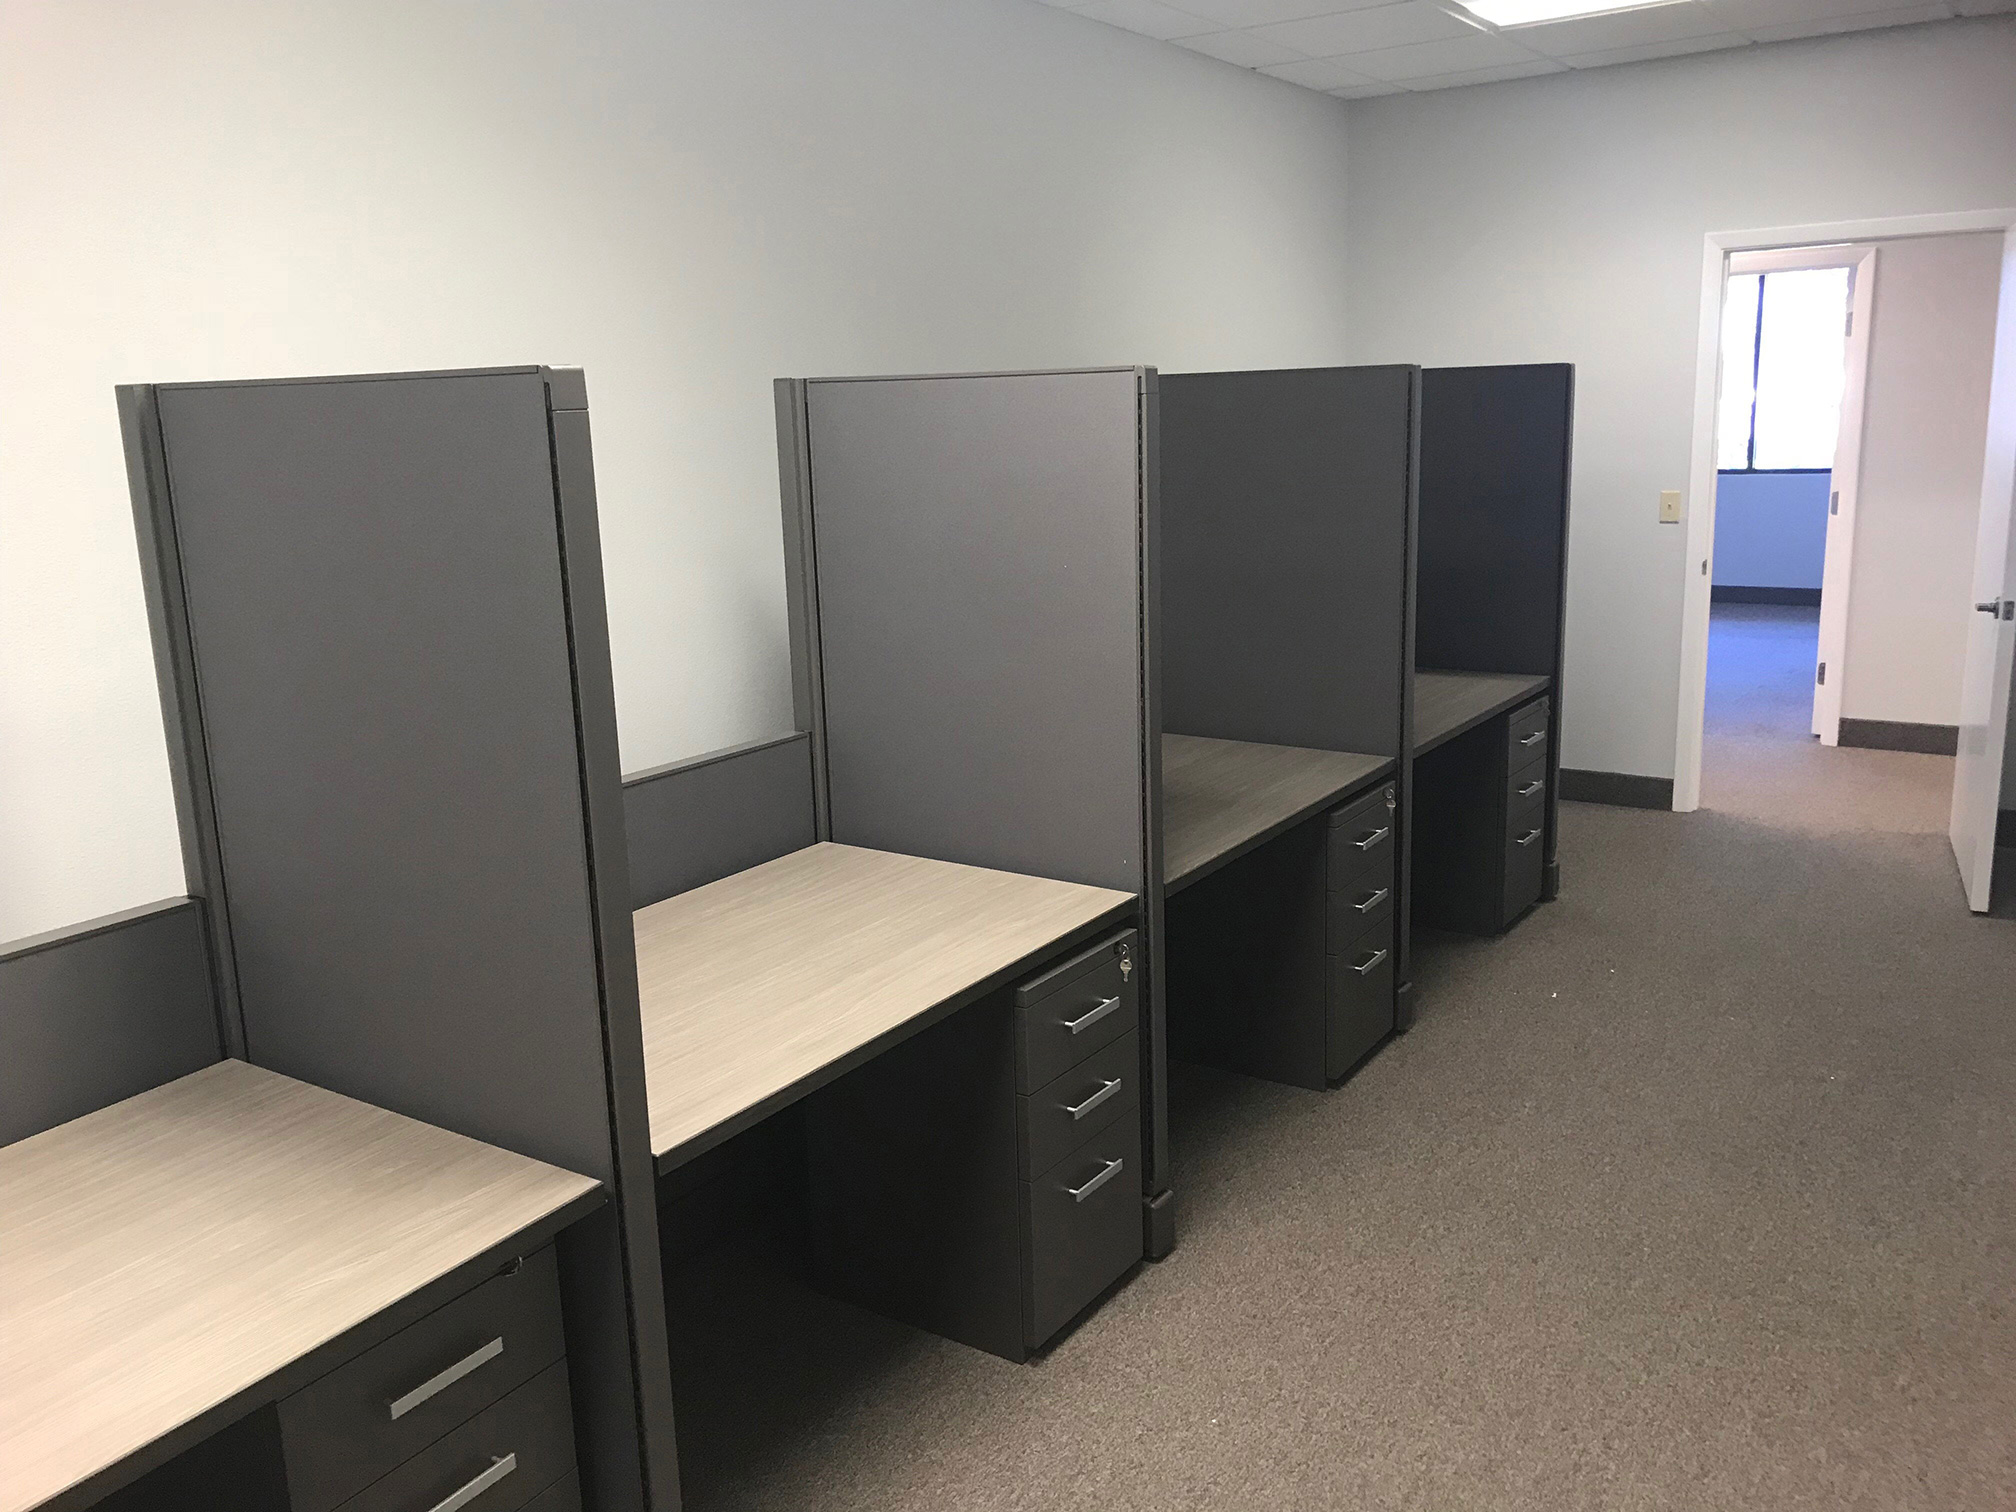 office-cubicles-for-sale-in-apalachicola-florida-3-1.jpg